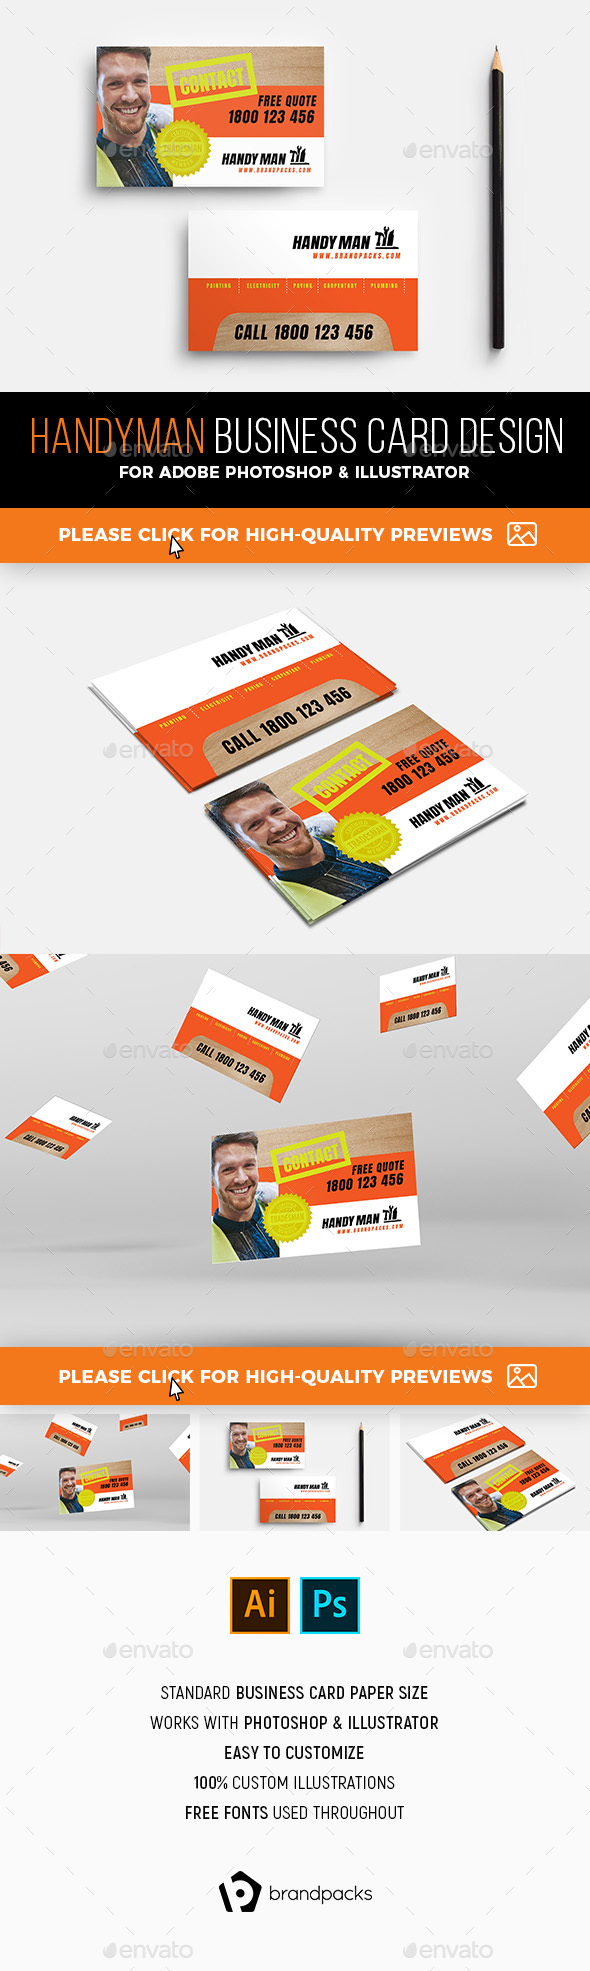 Handyman Business Card Template By BrandPacks GraphicRiver - Handyman business card template